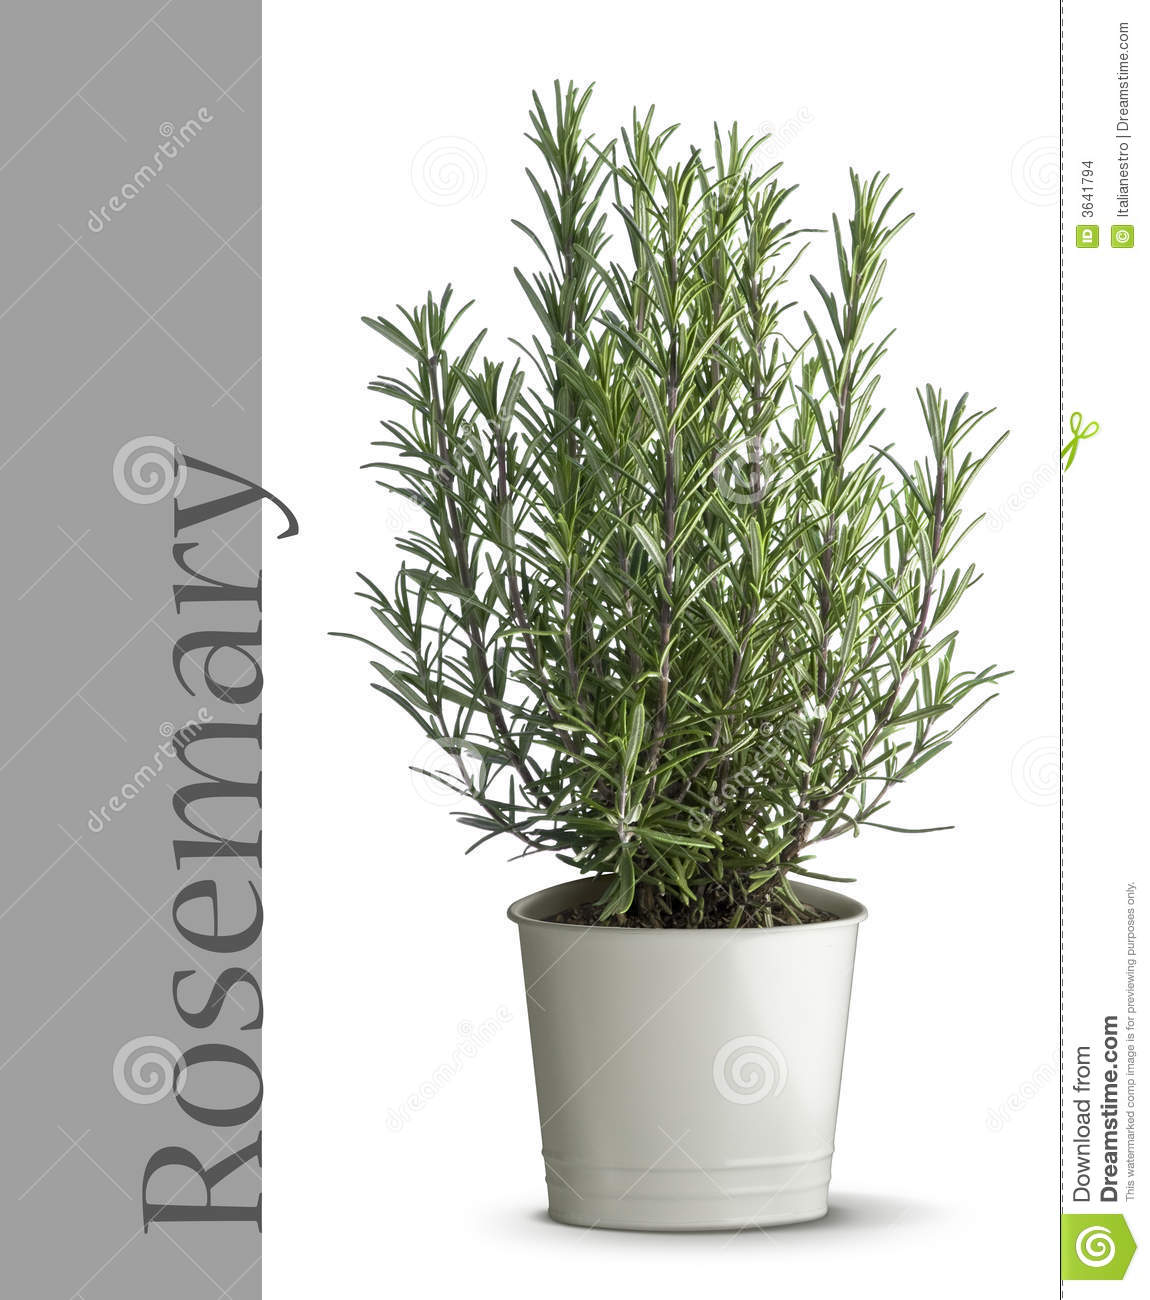 Rosemary Plant In Vase Stock Images  Image 3641794